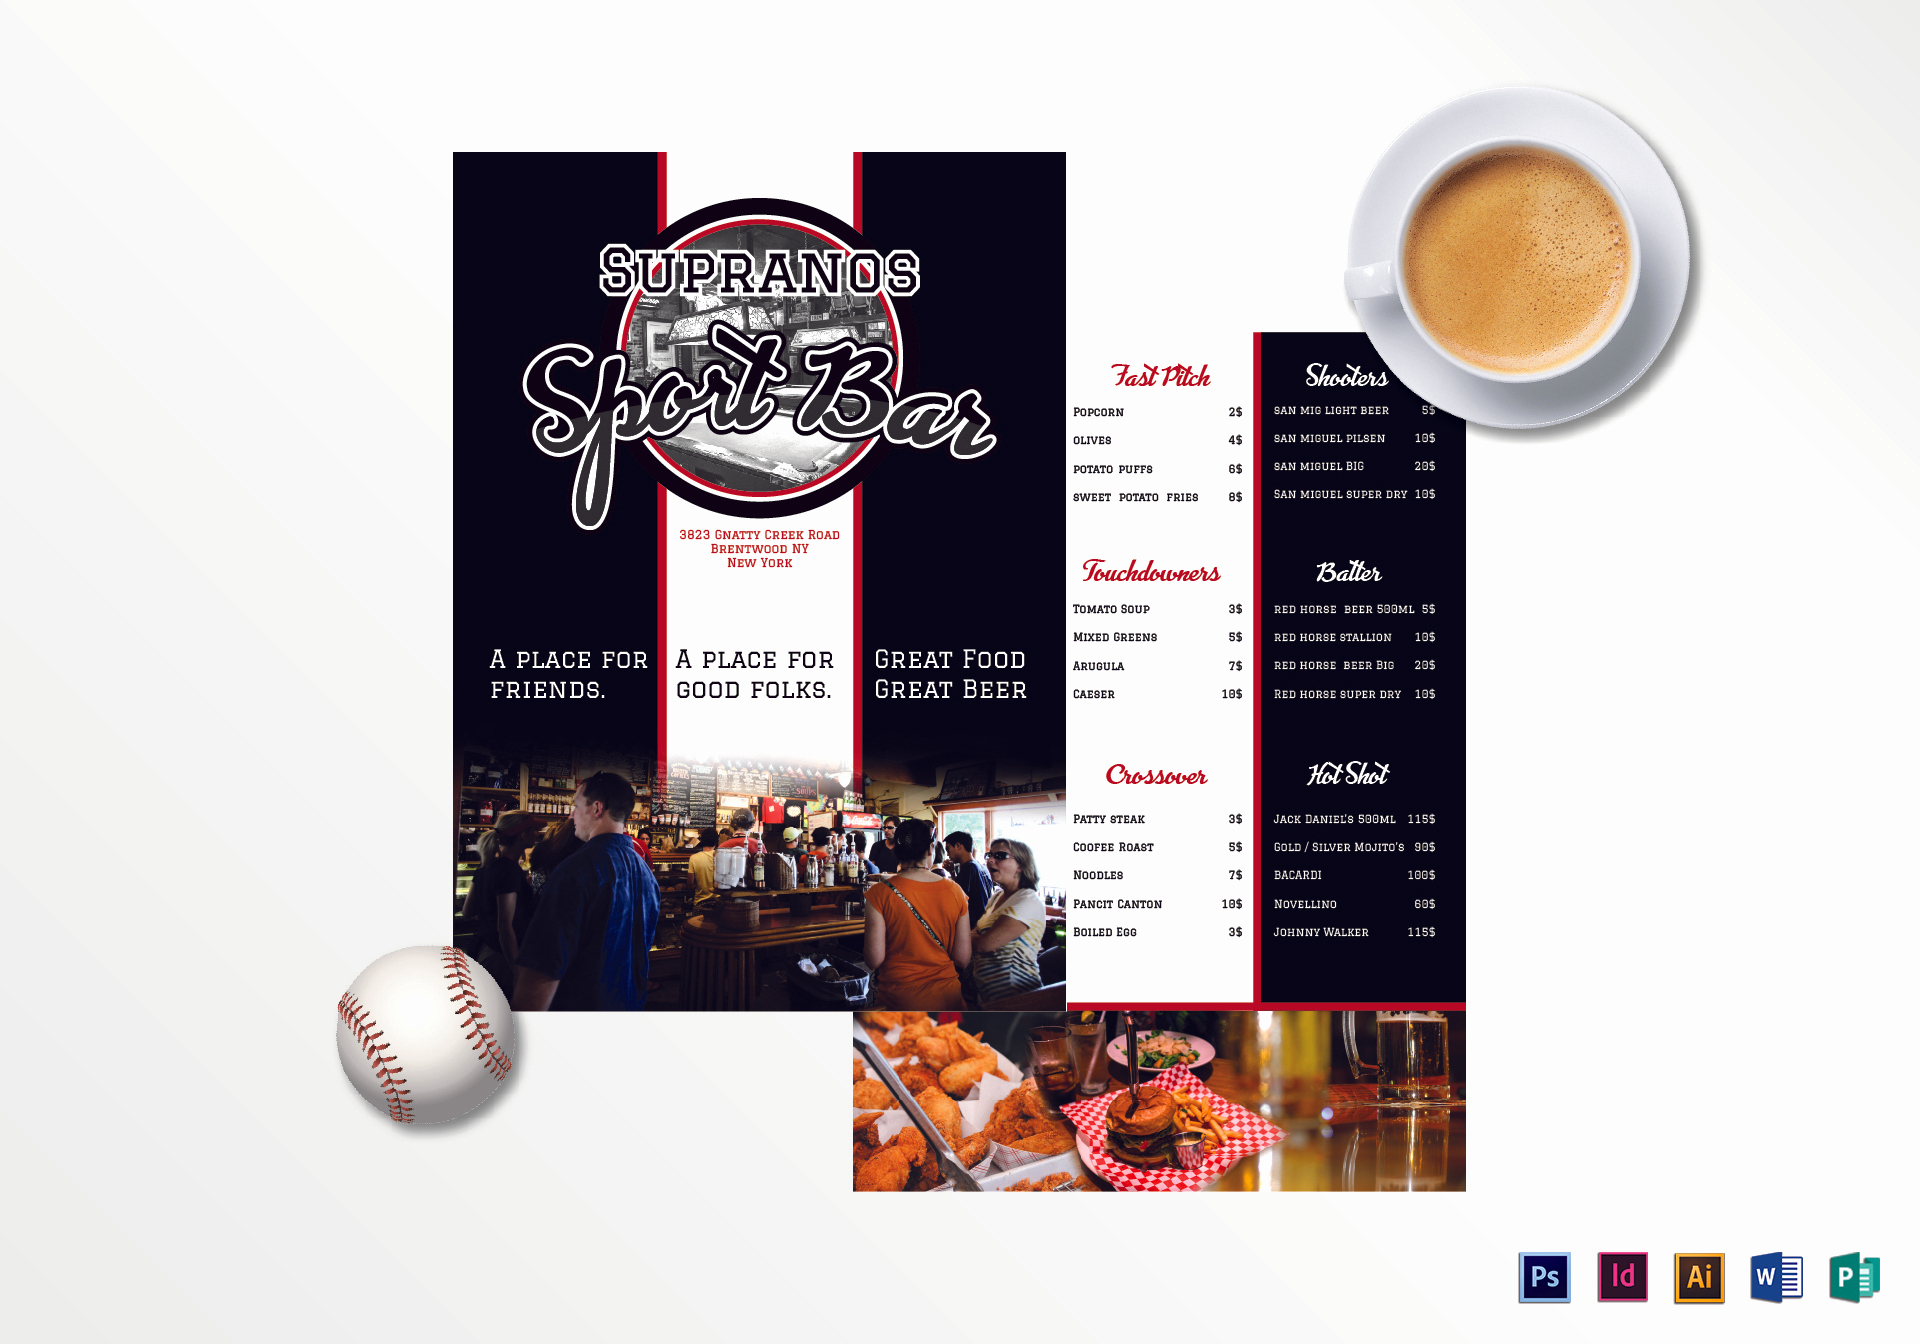 Sports Bar Menu Template Inspirational Sports Bar Menu Design Template In Psd Word Publisher